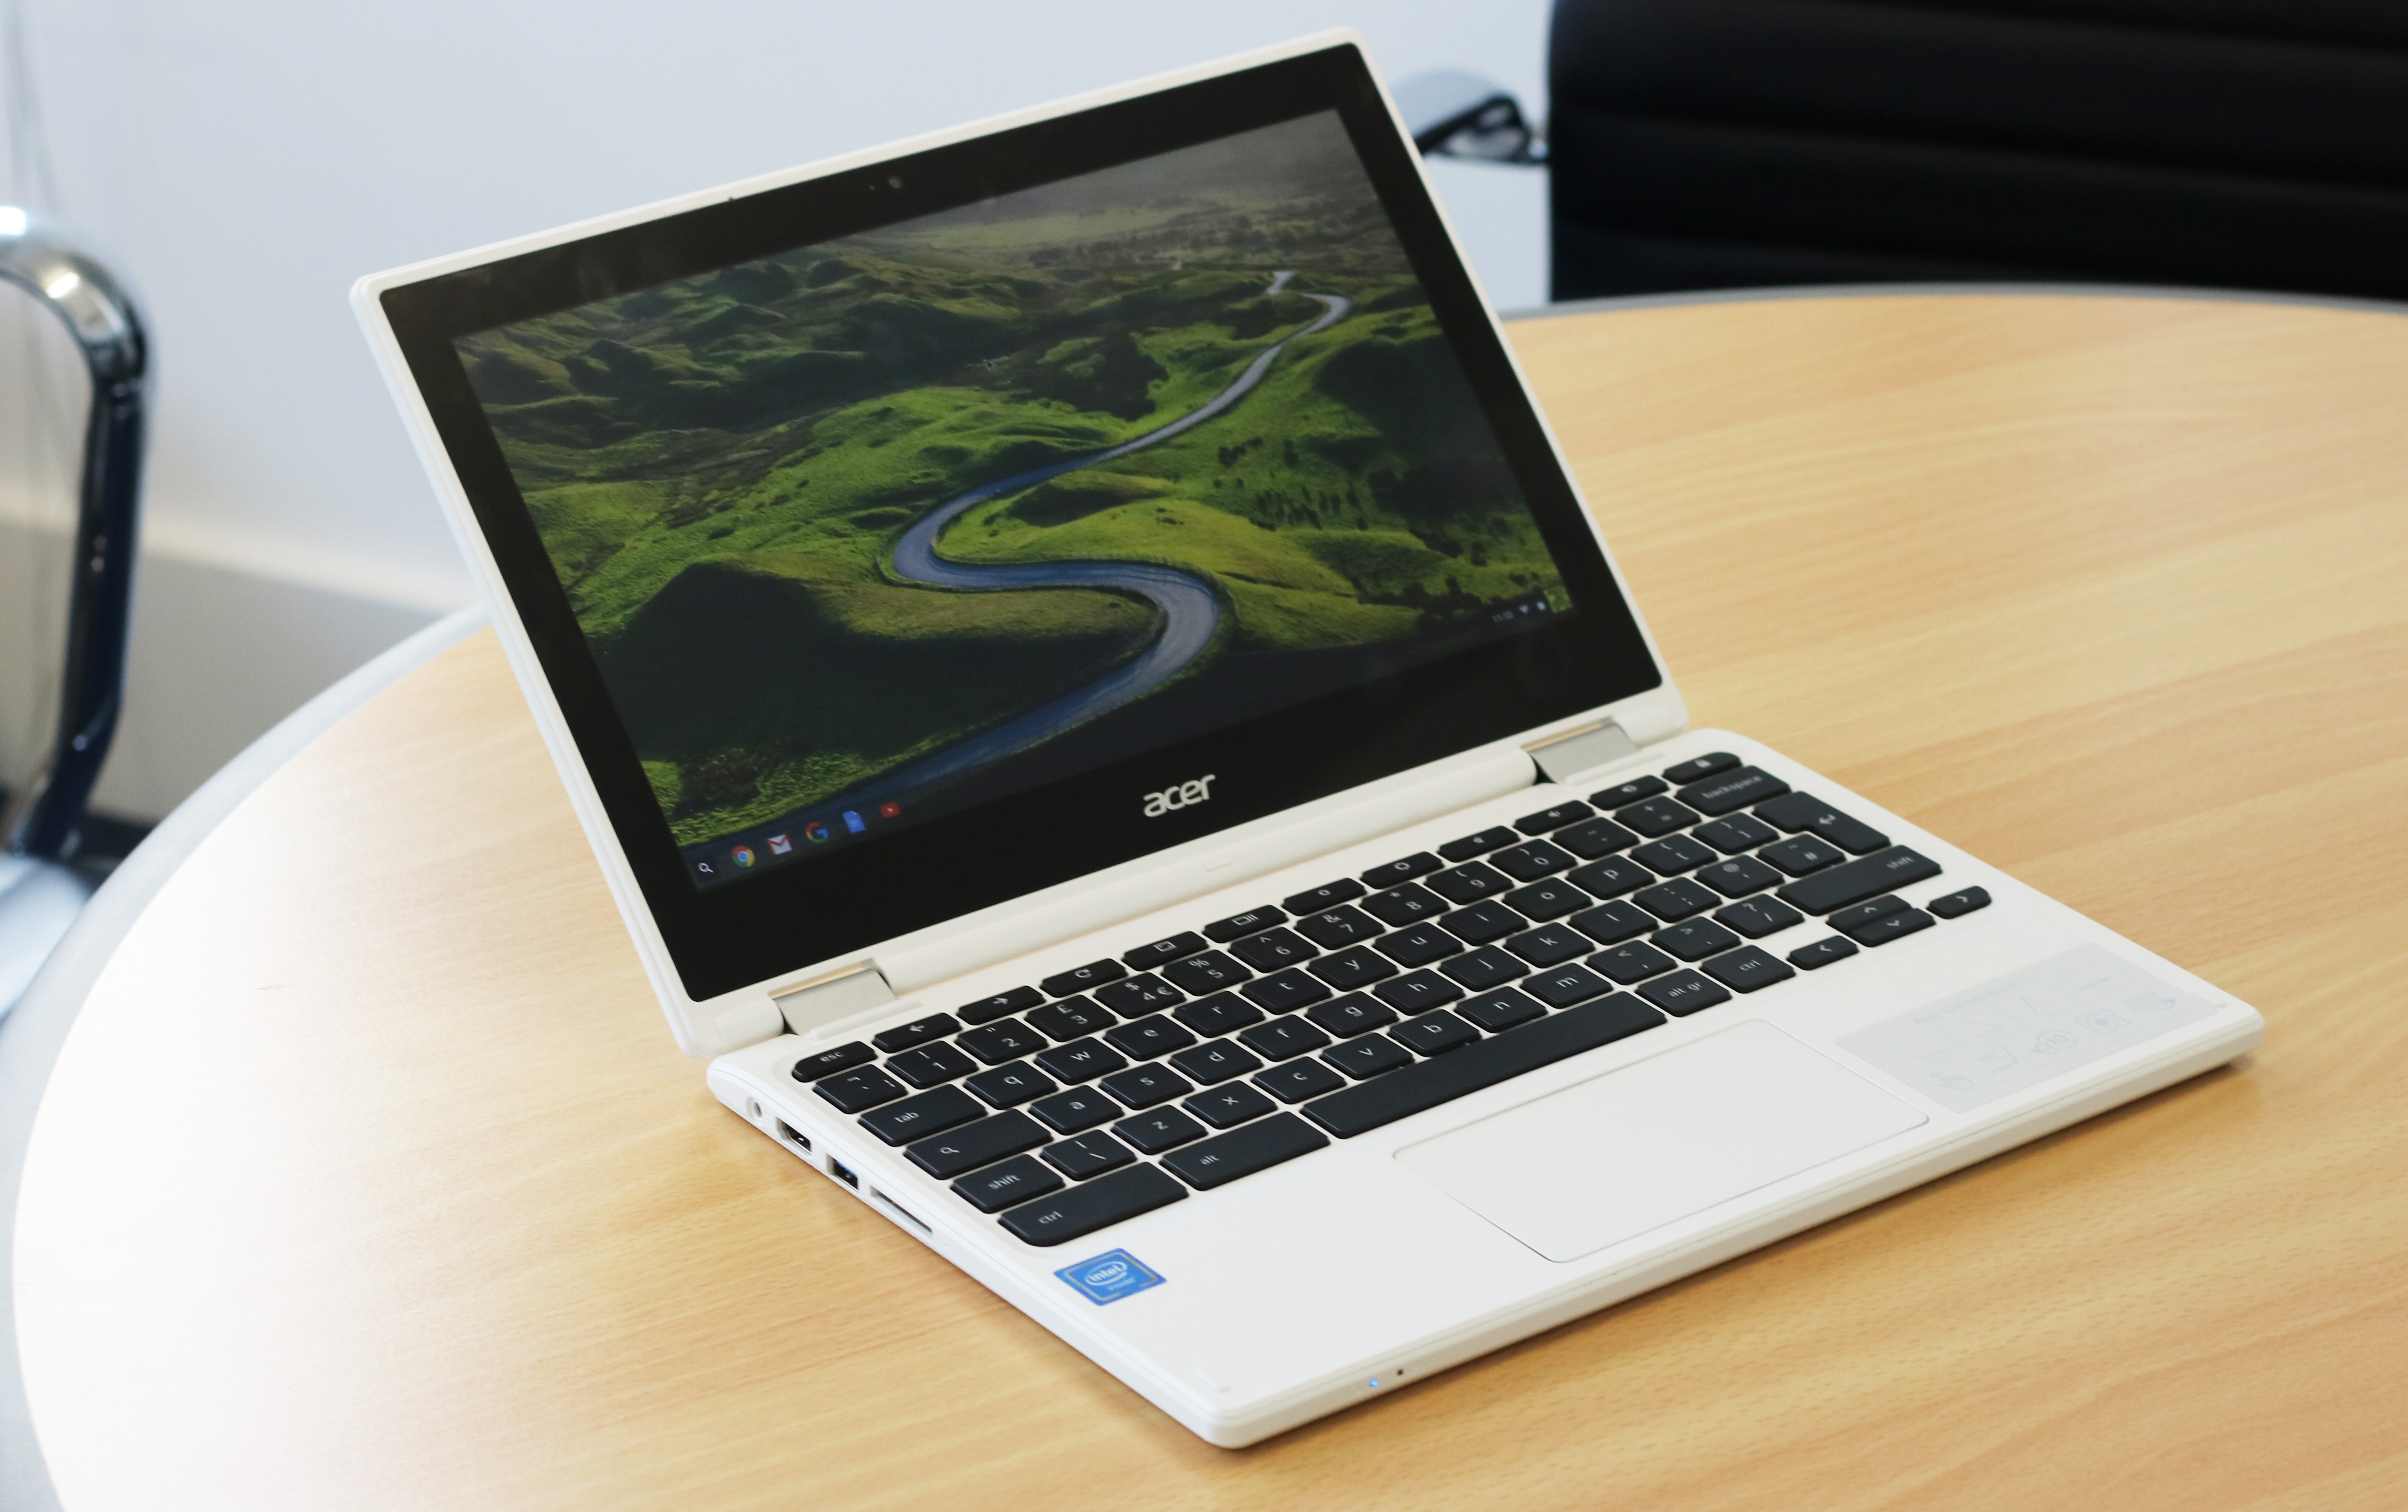 how to know your specs windows 8.1 laptop